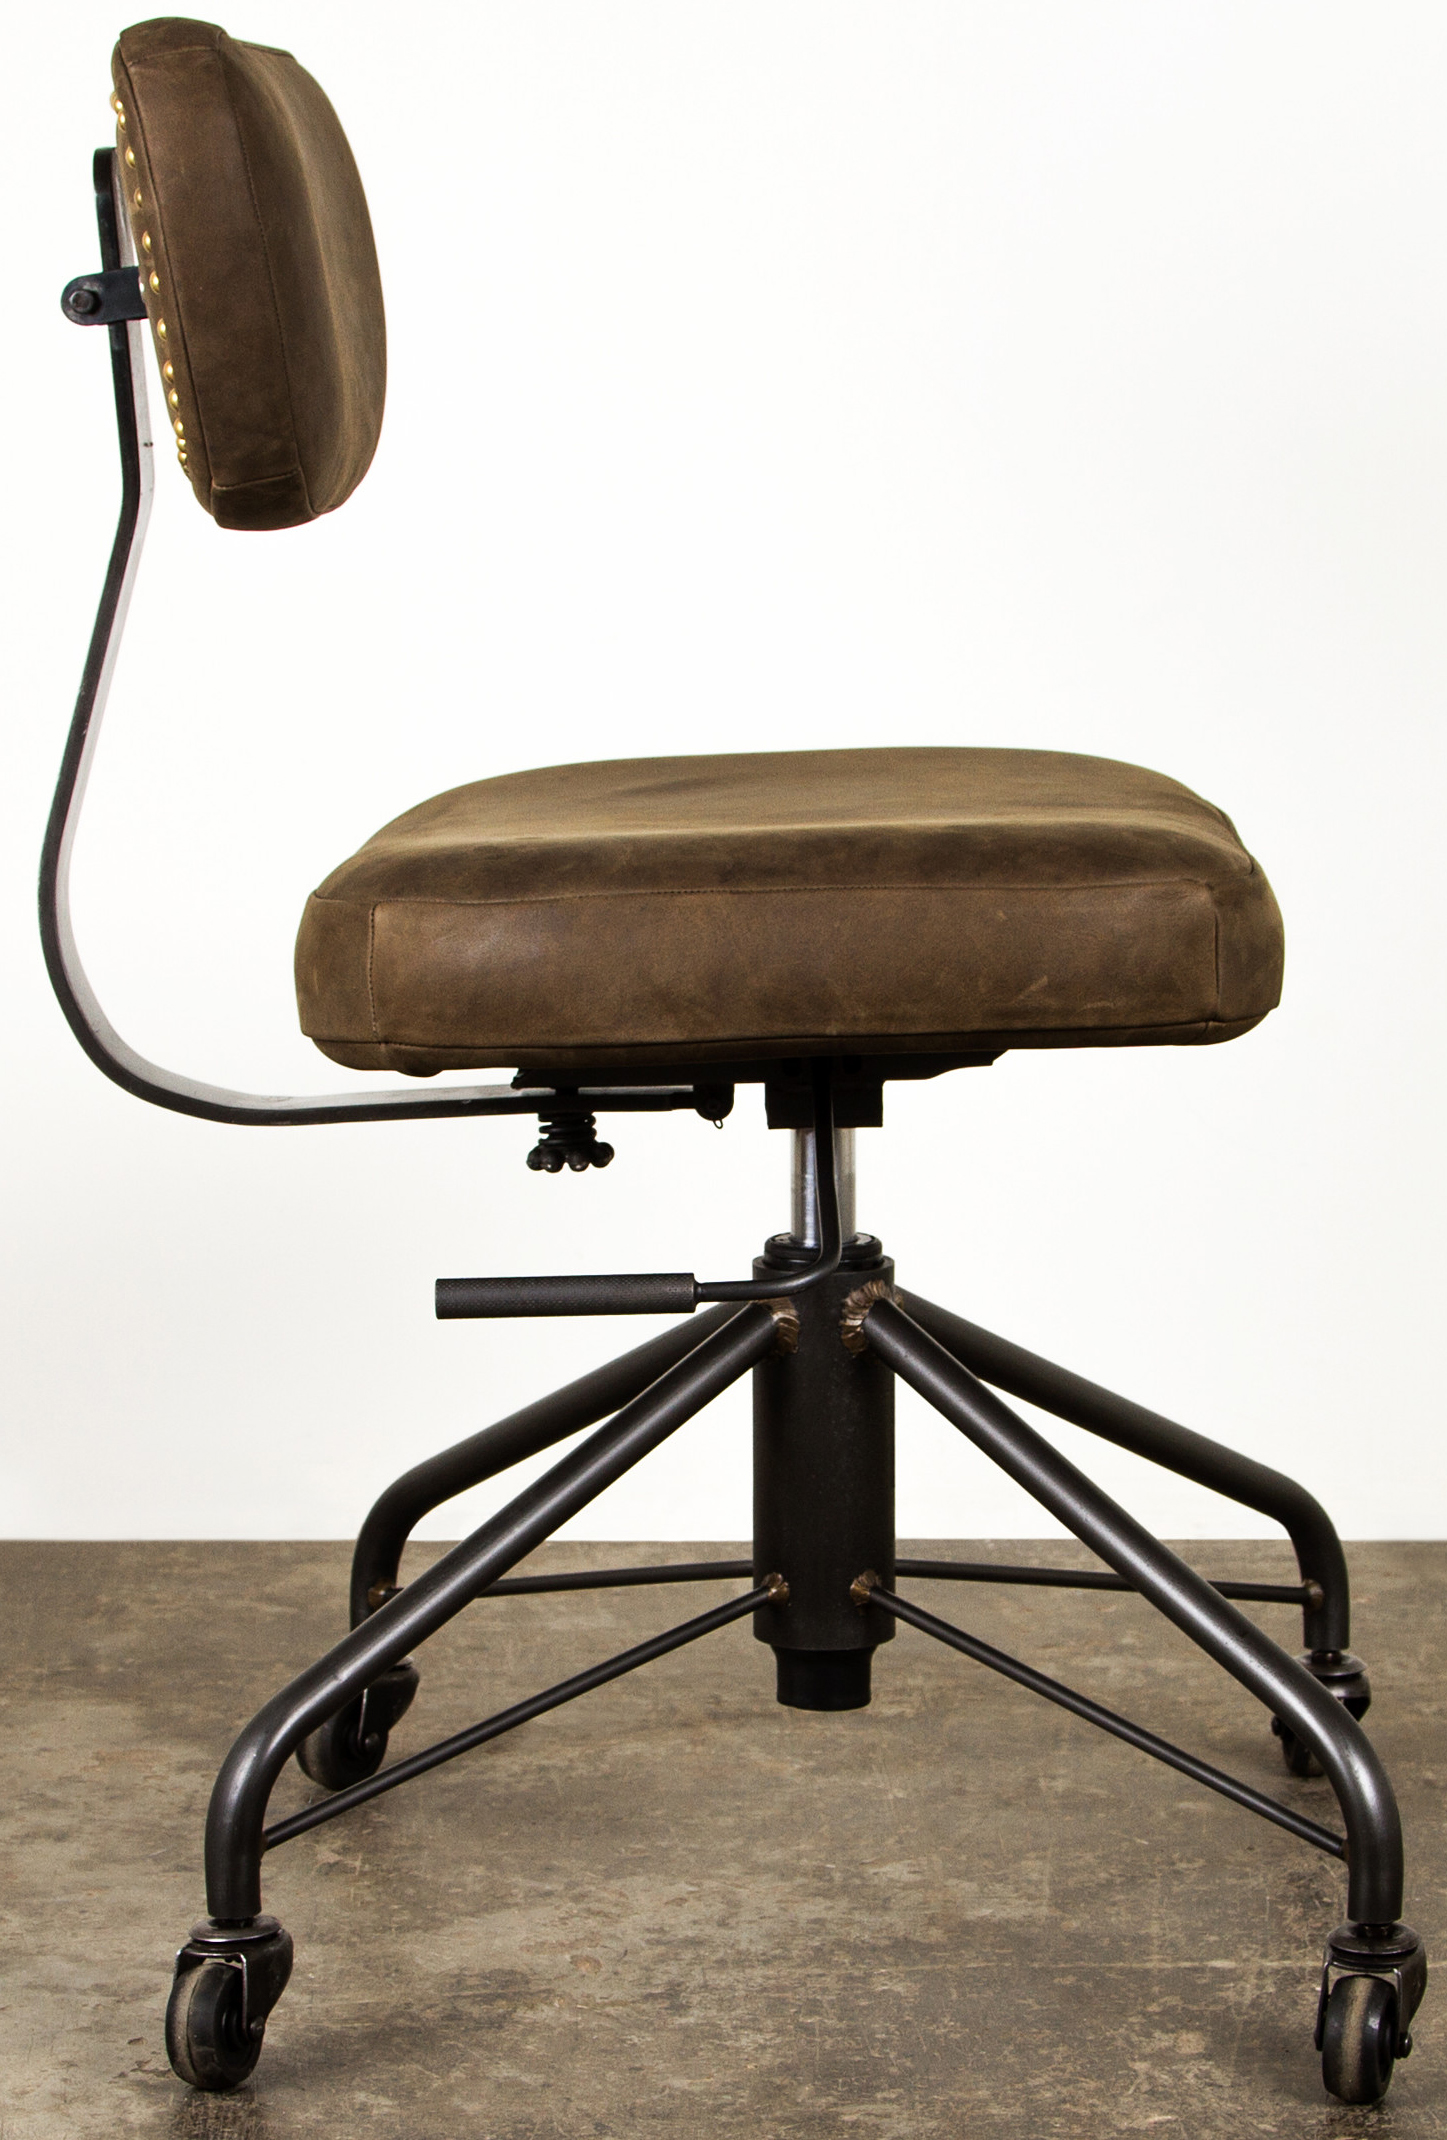 the nuevo hgda386 rand office chair